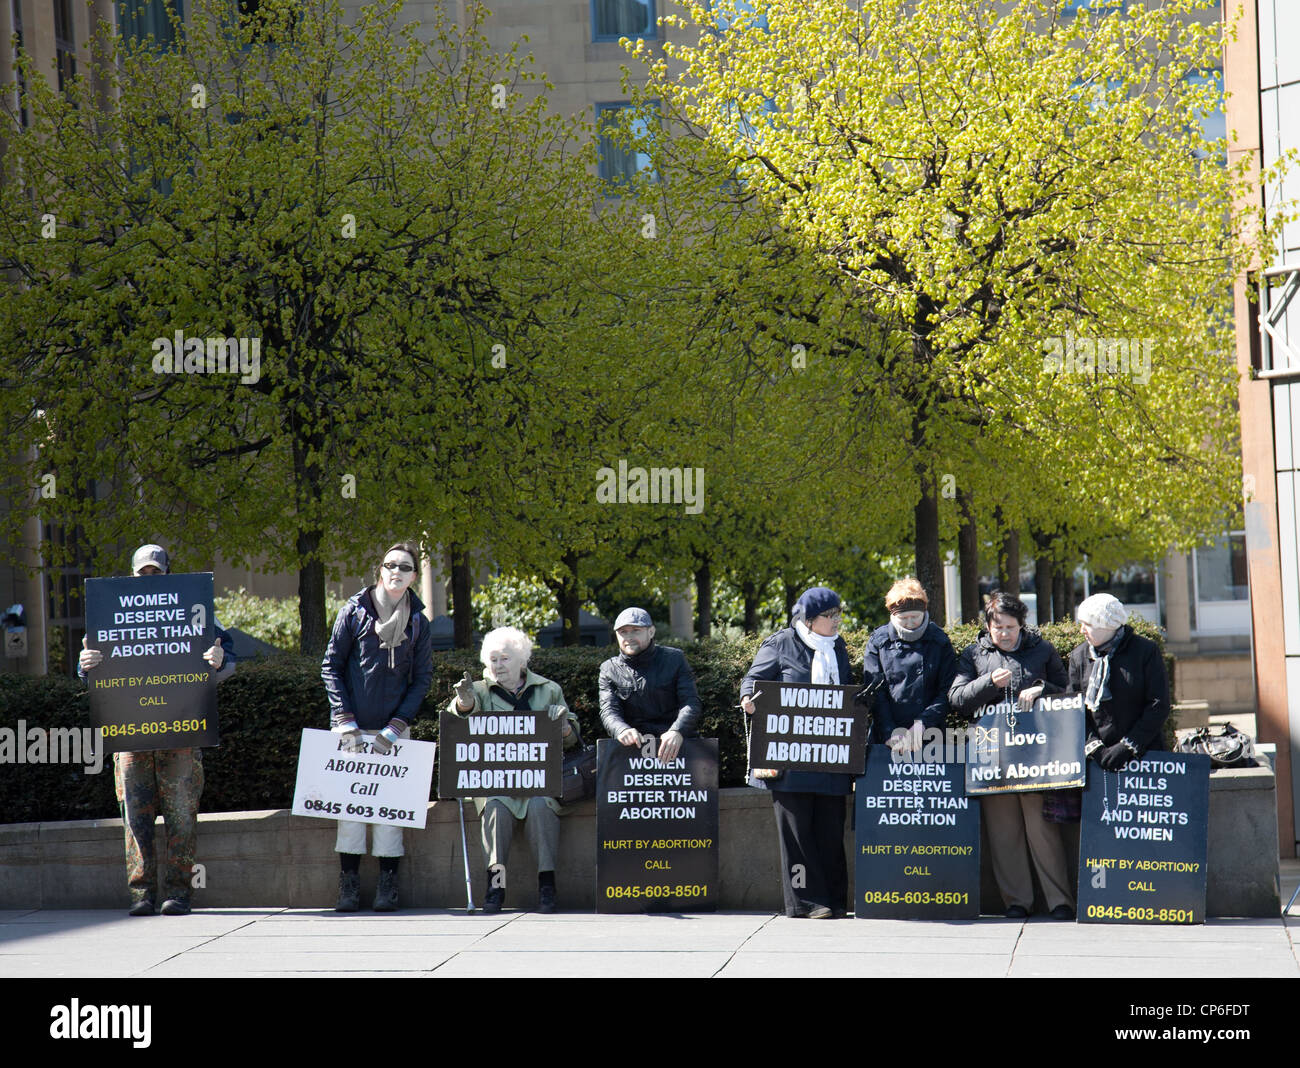 Abortion right-to-life protest Edinburgh Scotland. - Stock Image